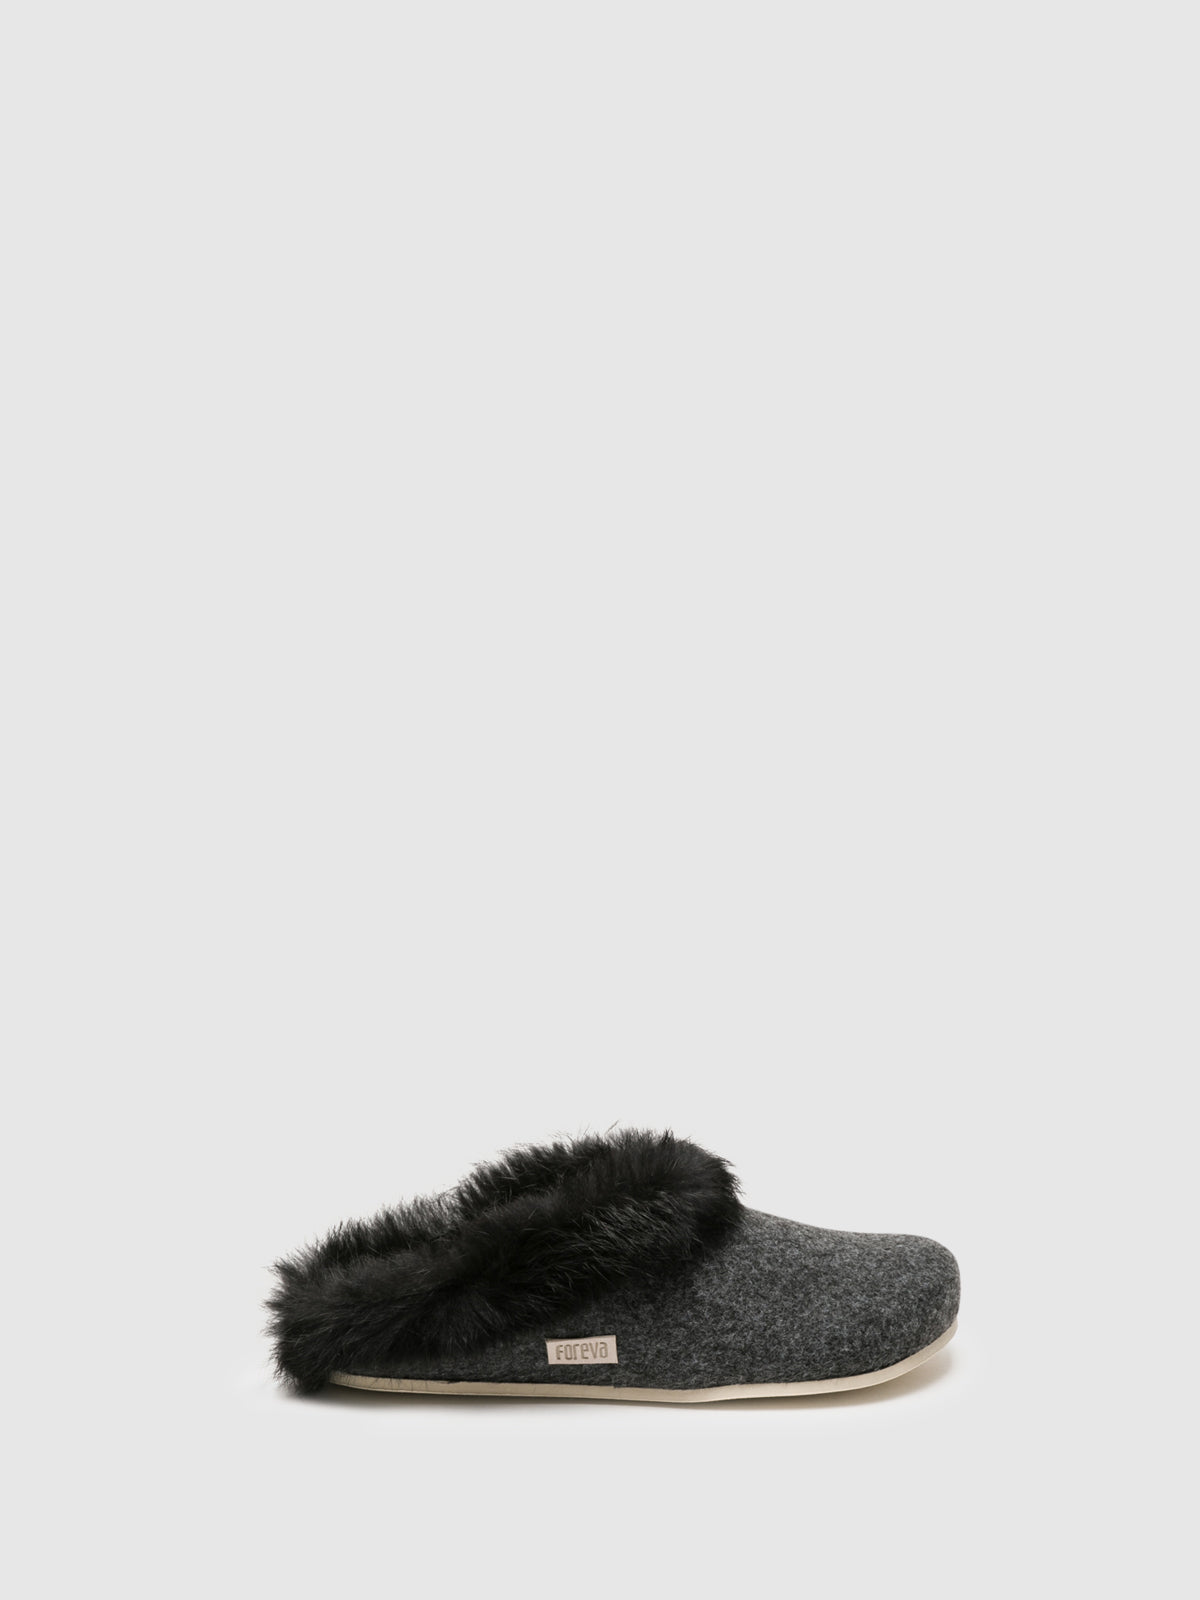 Foreva Gray Fur Slides